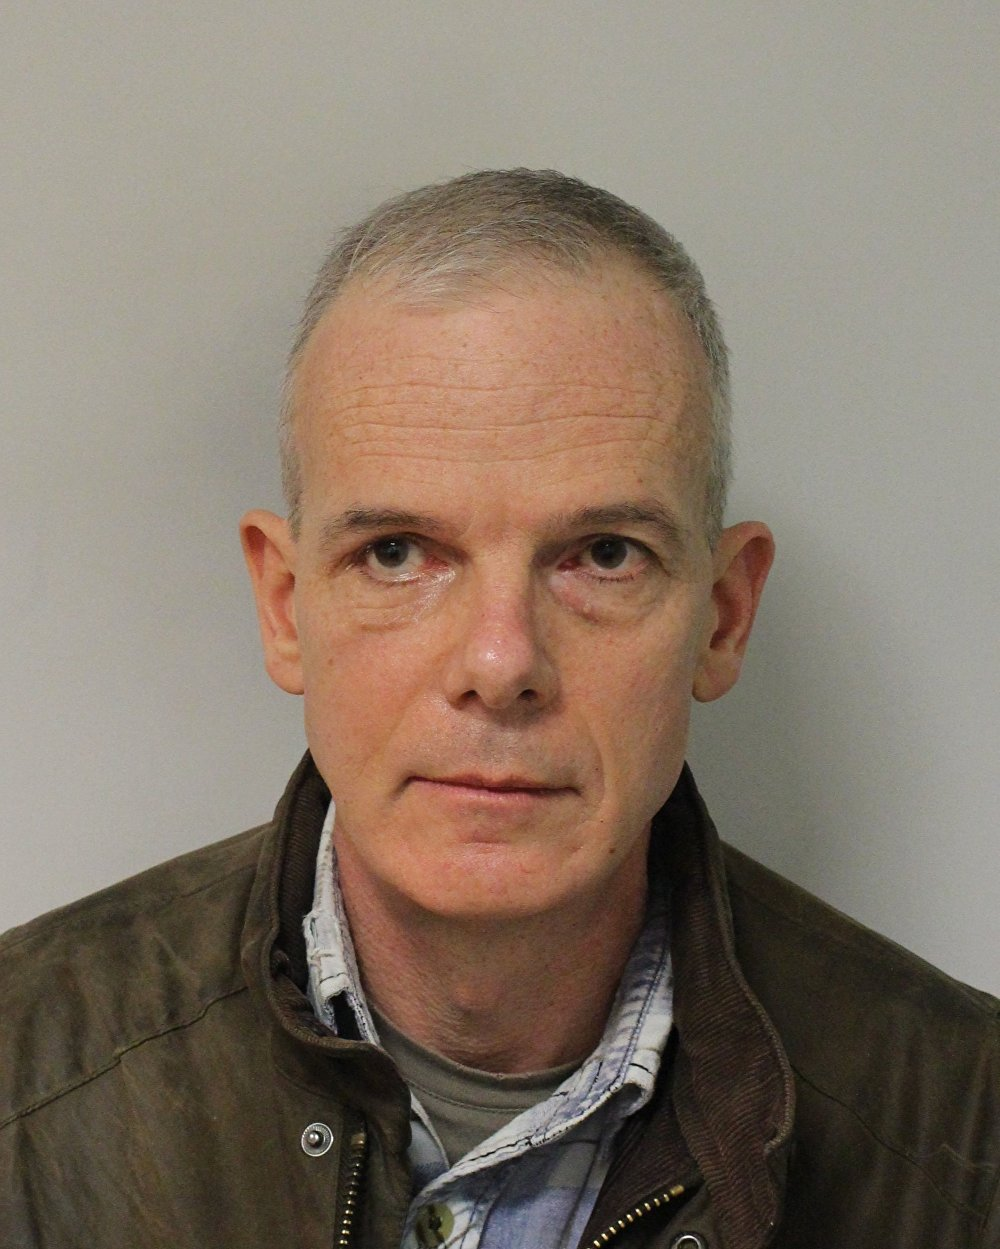 Michael Seed (pictured) was jailed for 10 years on 15 March 2019 for his role in the Hatton Garden heist